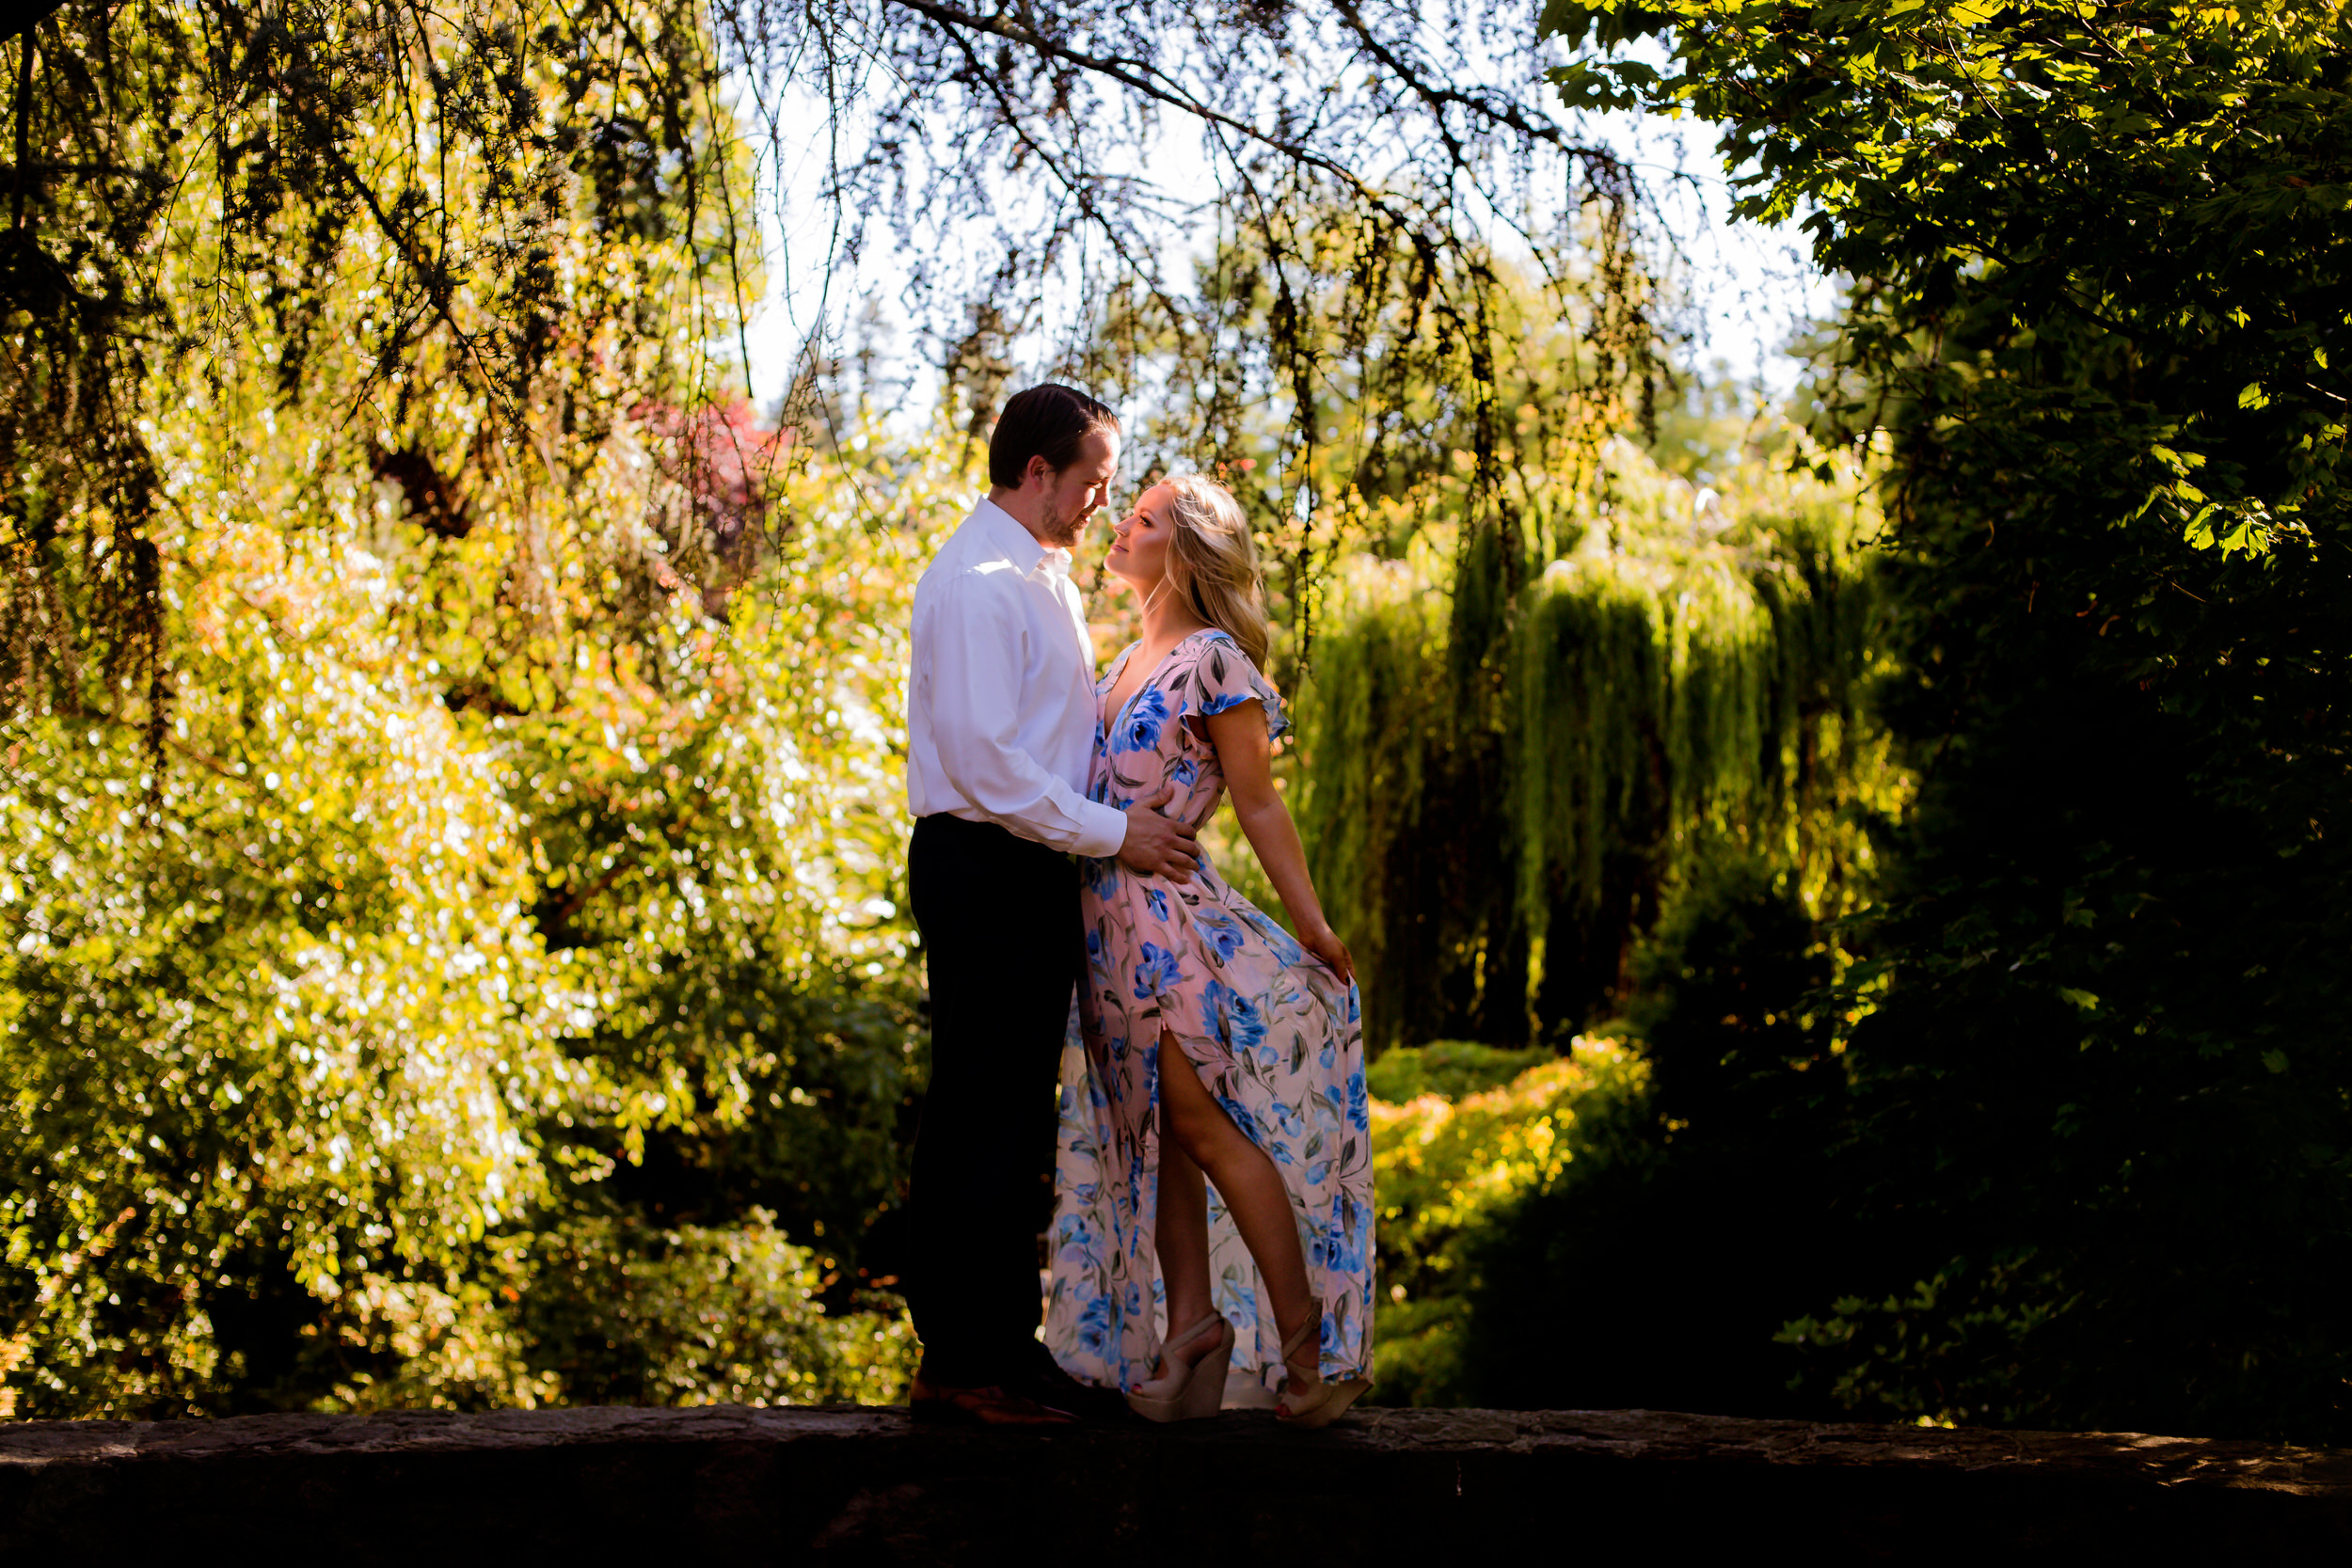 A beautiful engagement and colorful wedding photos at Crystal Springs Rhododendron Garden.